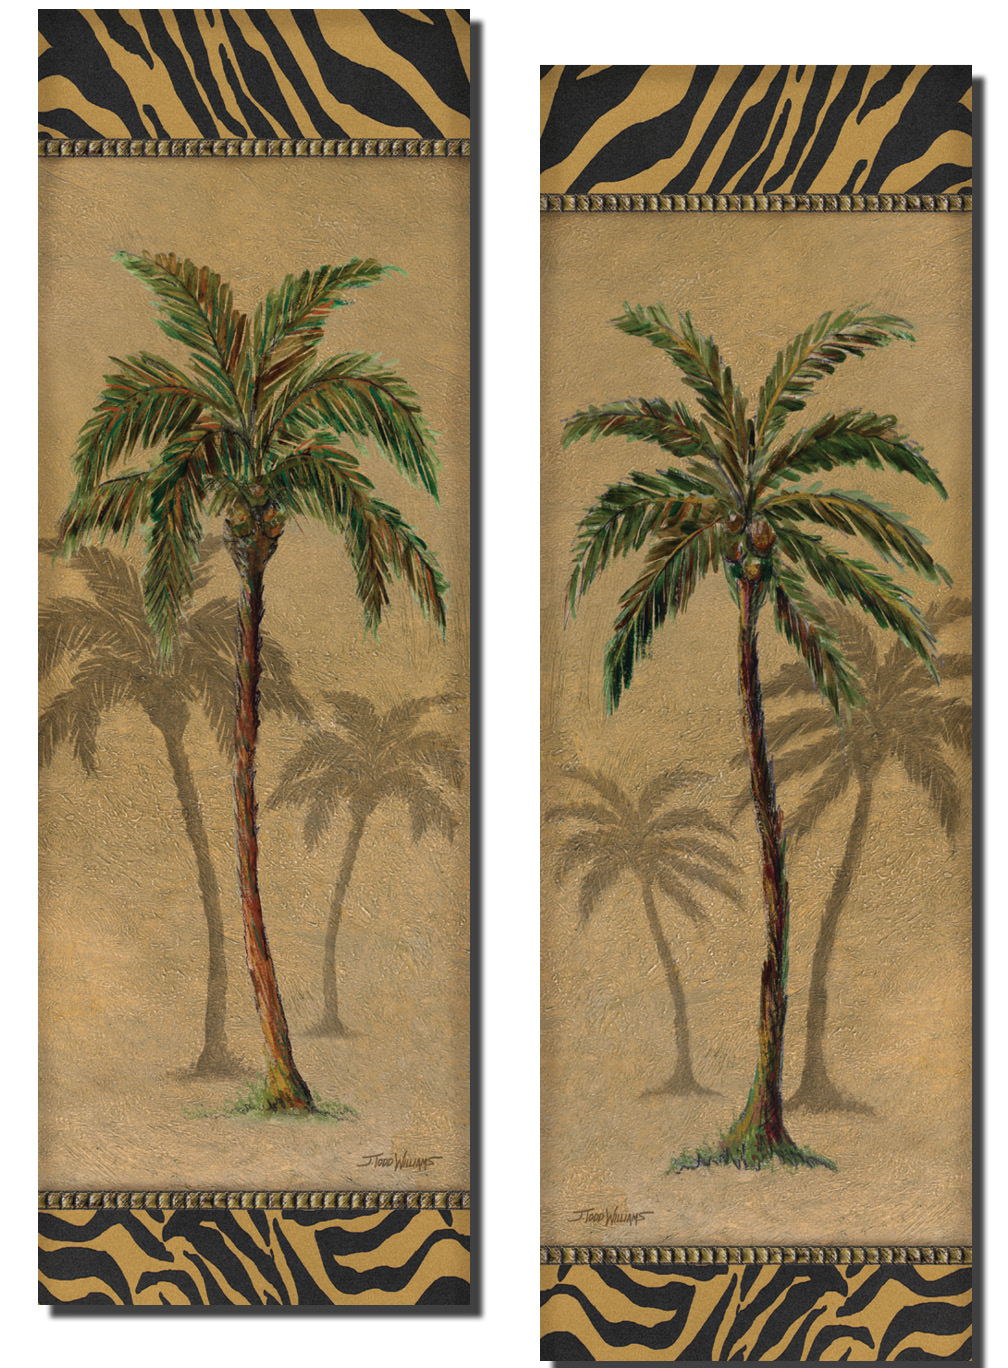 popular animal print bordered palm tree poster panels two 6x18in poster prints